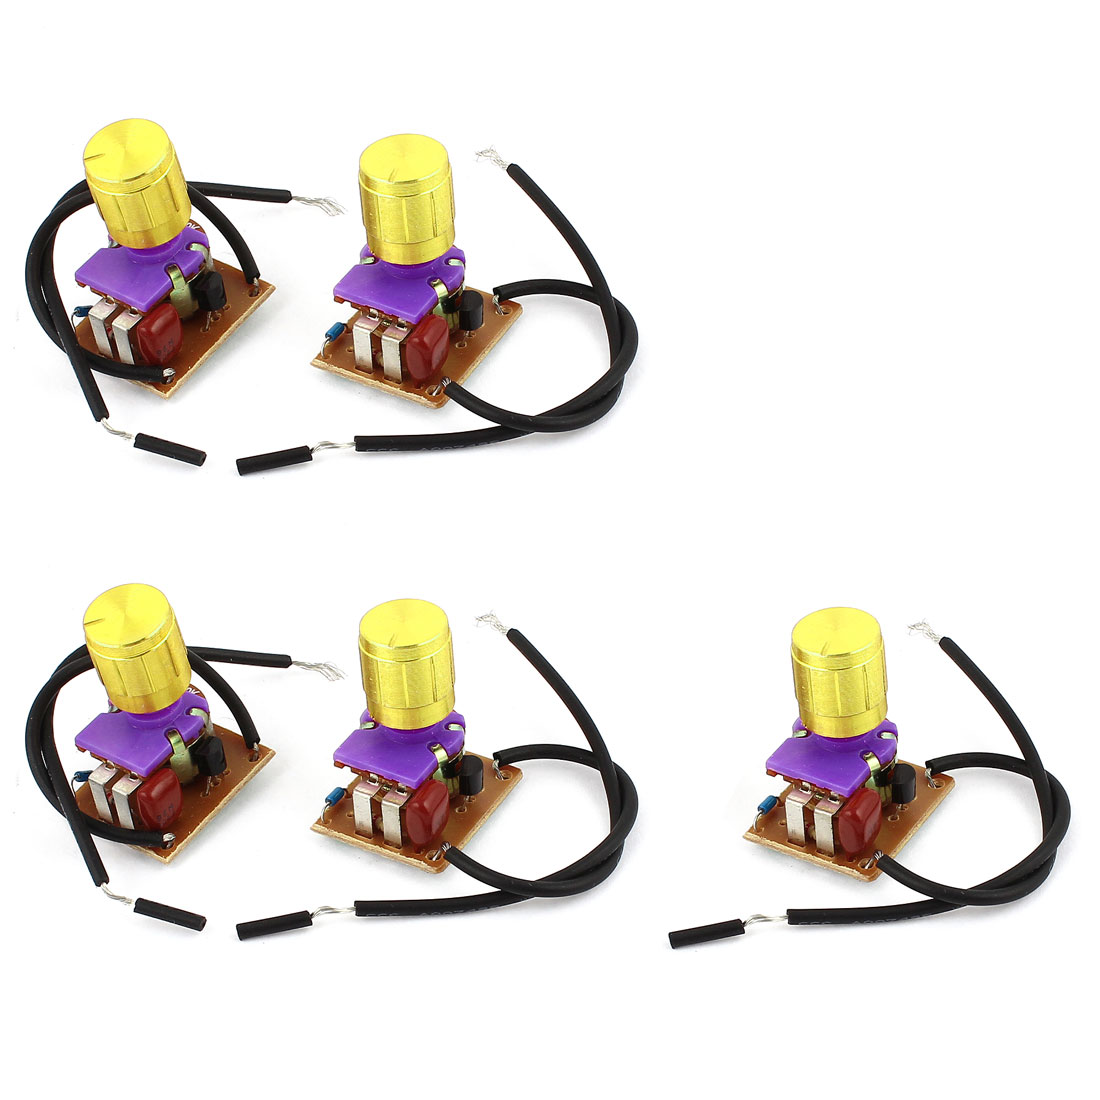 5pcs Gold Tone 14mm Dia Rotary Knob Control Dimmer Switch AC220V 1-3A